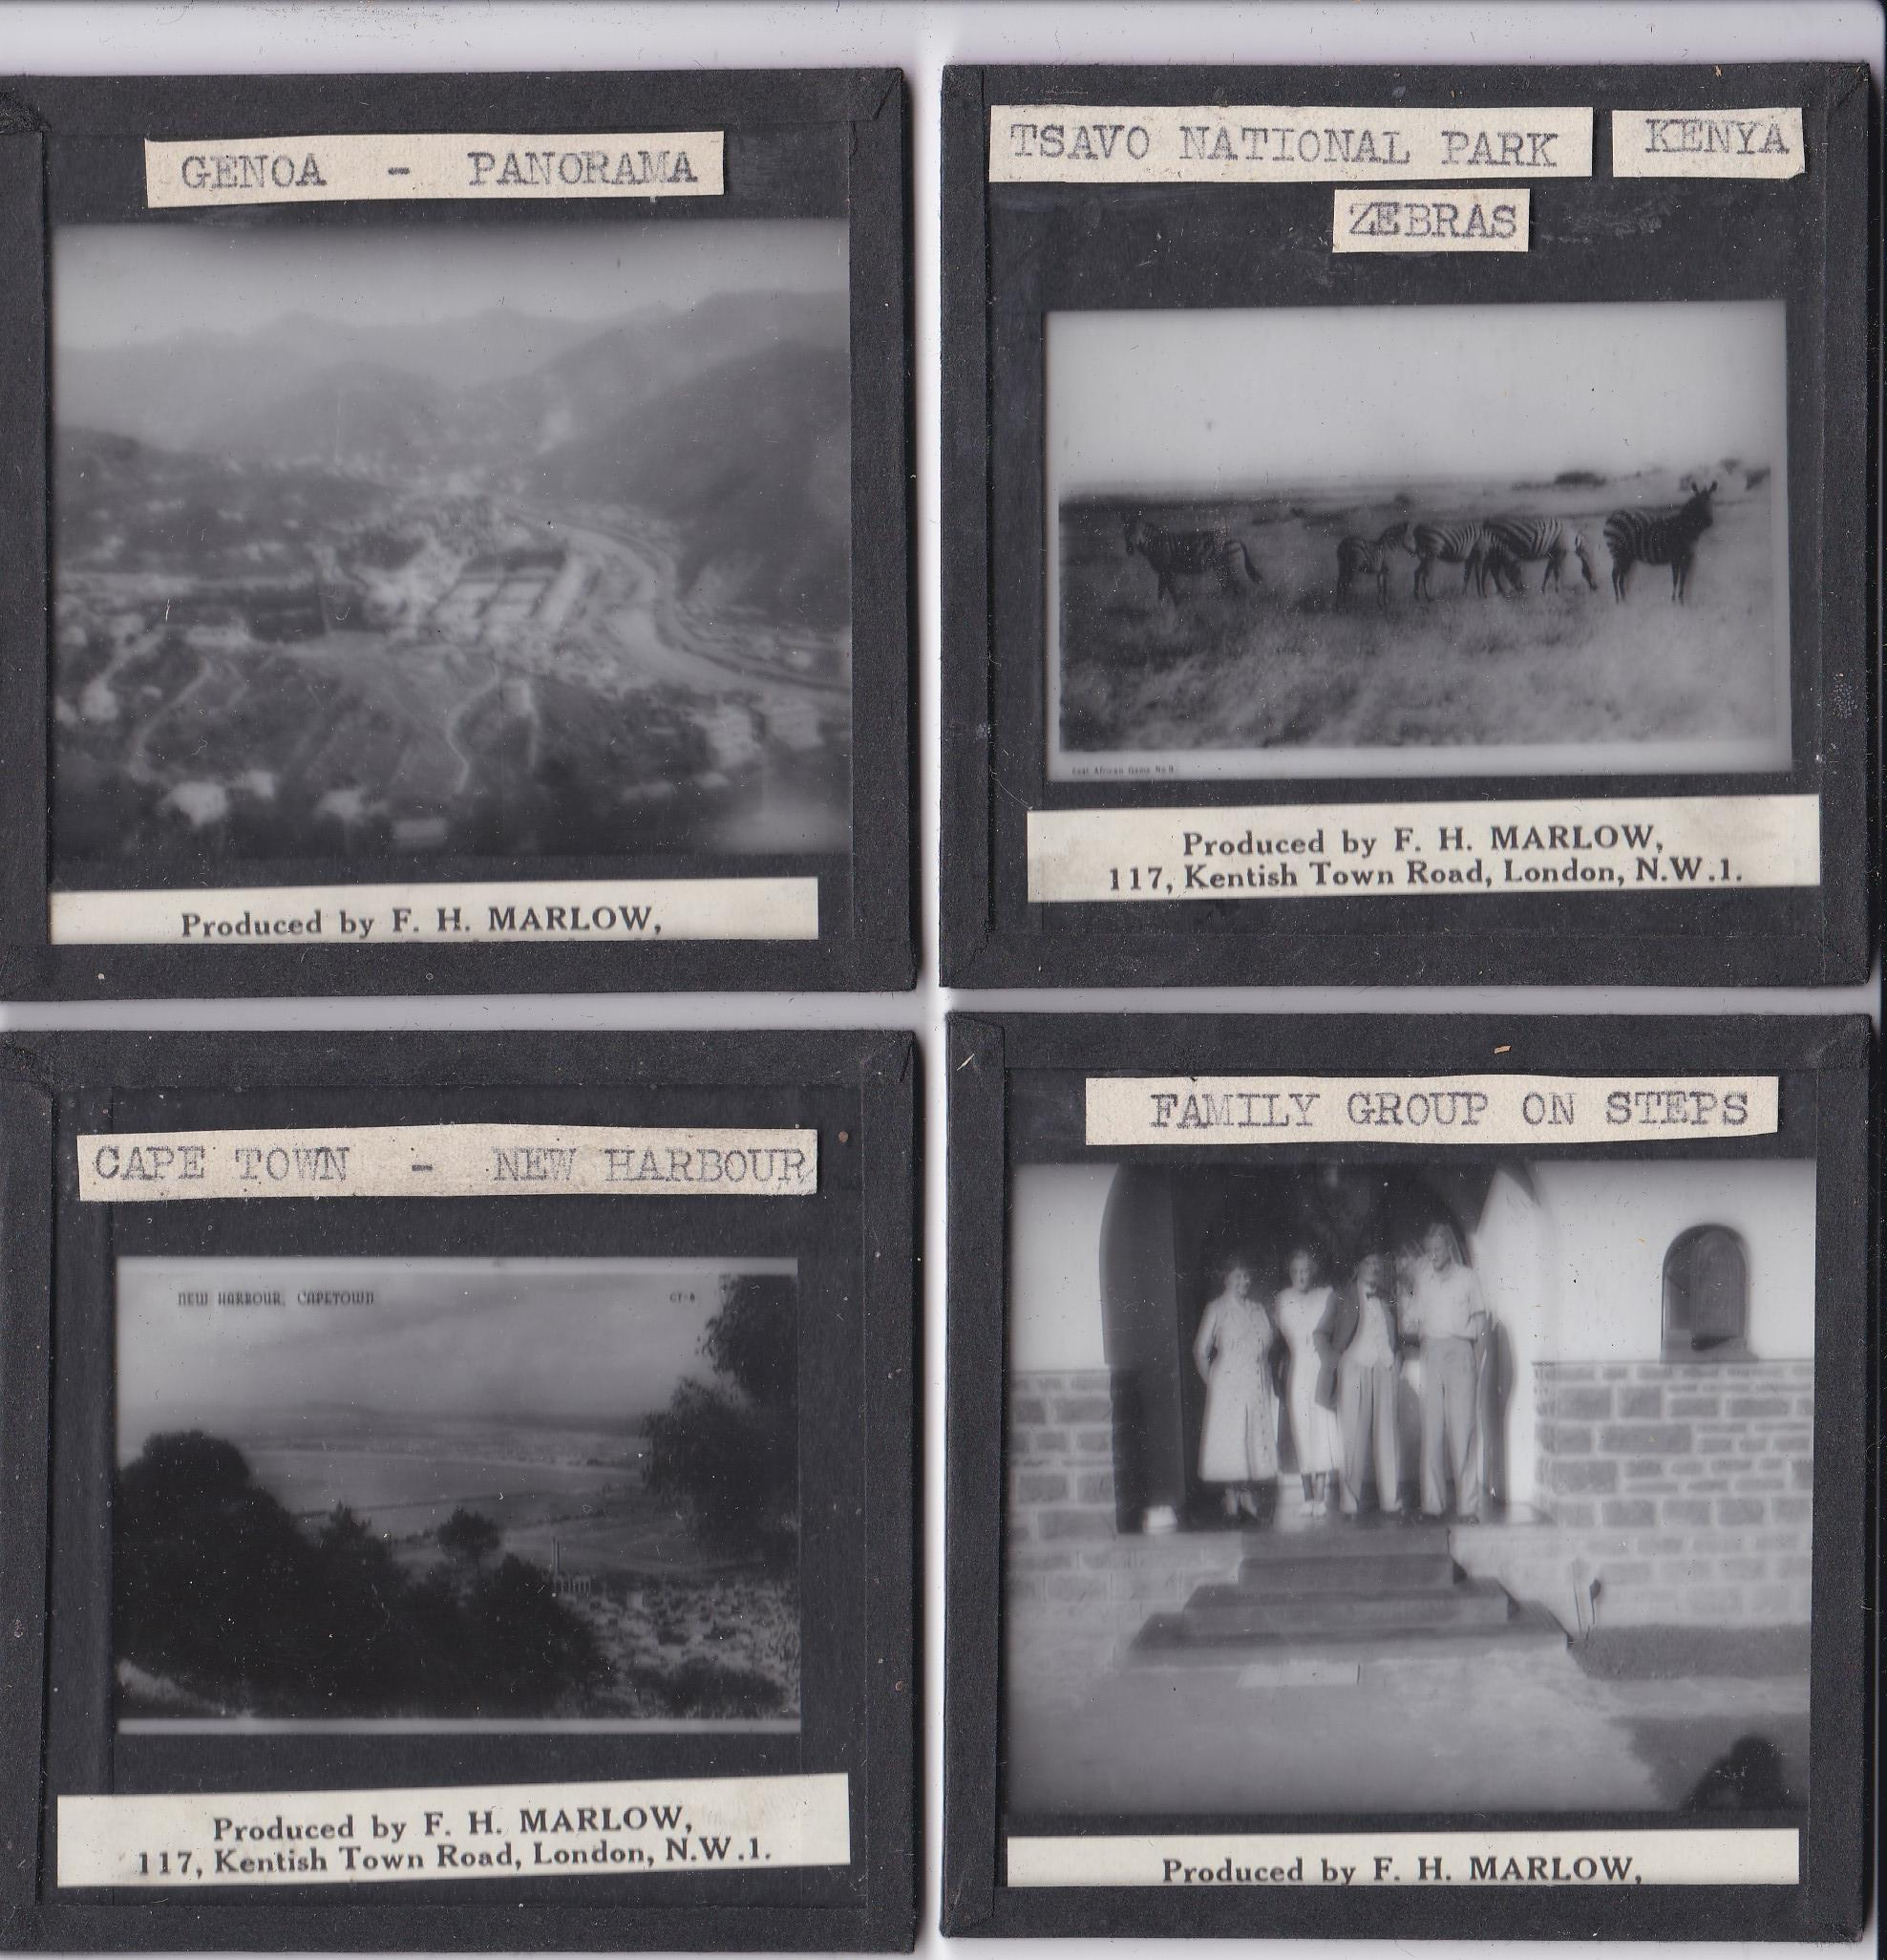 Views in Africa b/w Magic Lantern Slides (11) produced by F.H. Marlow including: Tsavo National Park